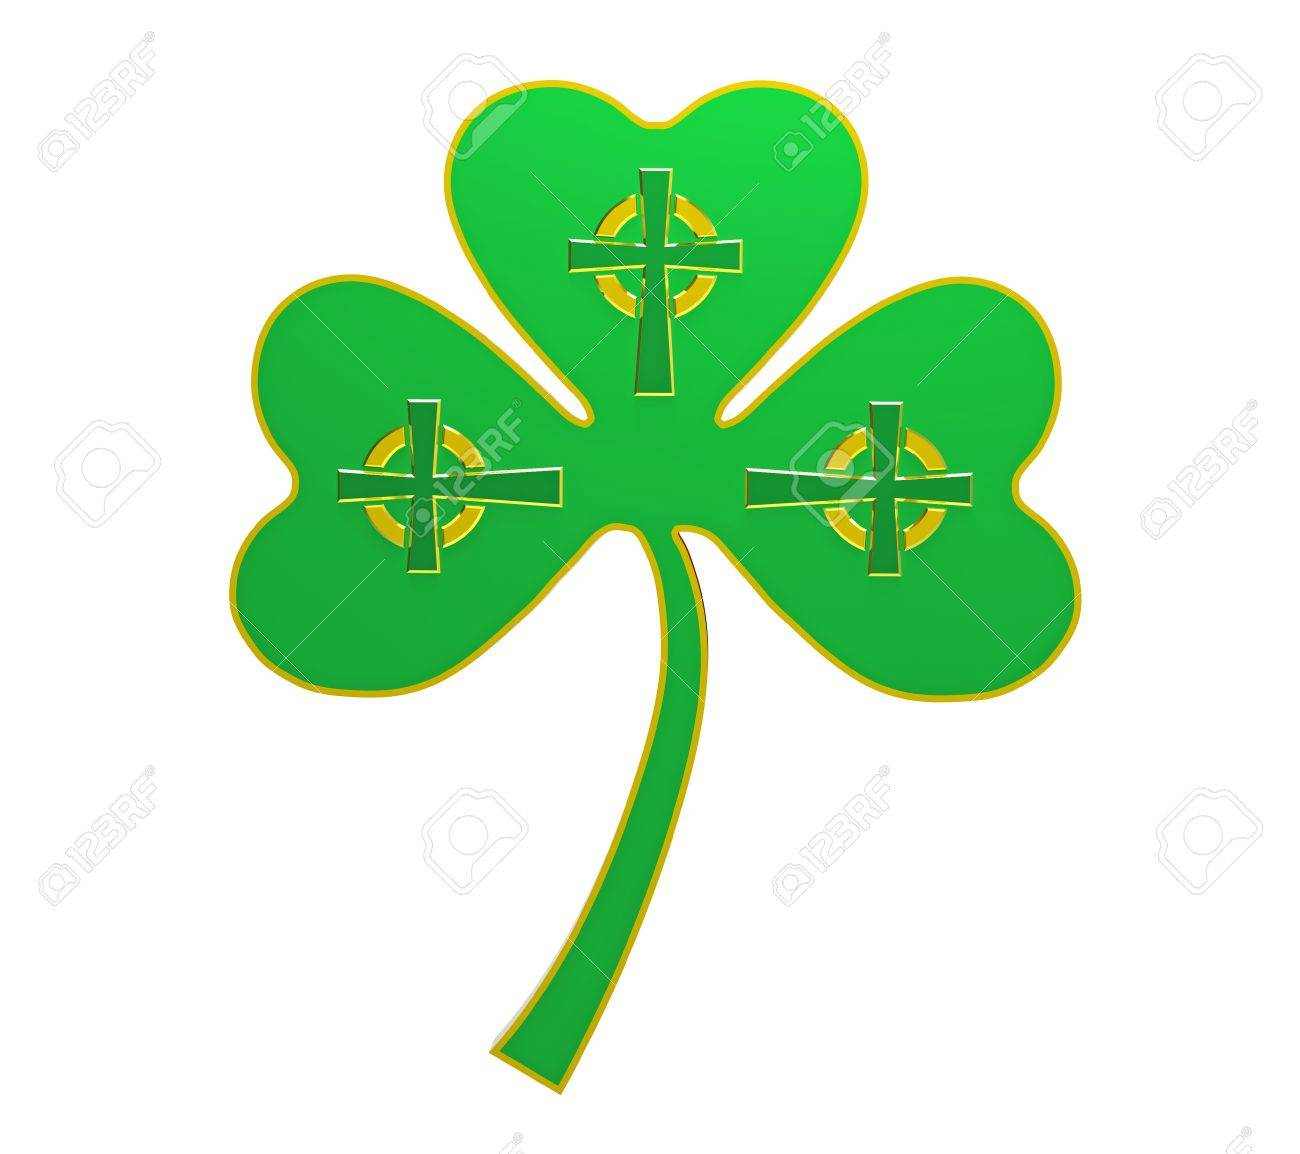 Clover with celtic crosses, isolated on white 3d render Stock Photo - 8783805